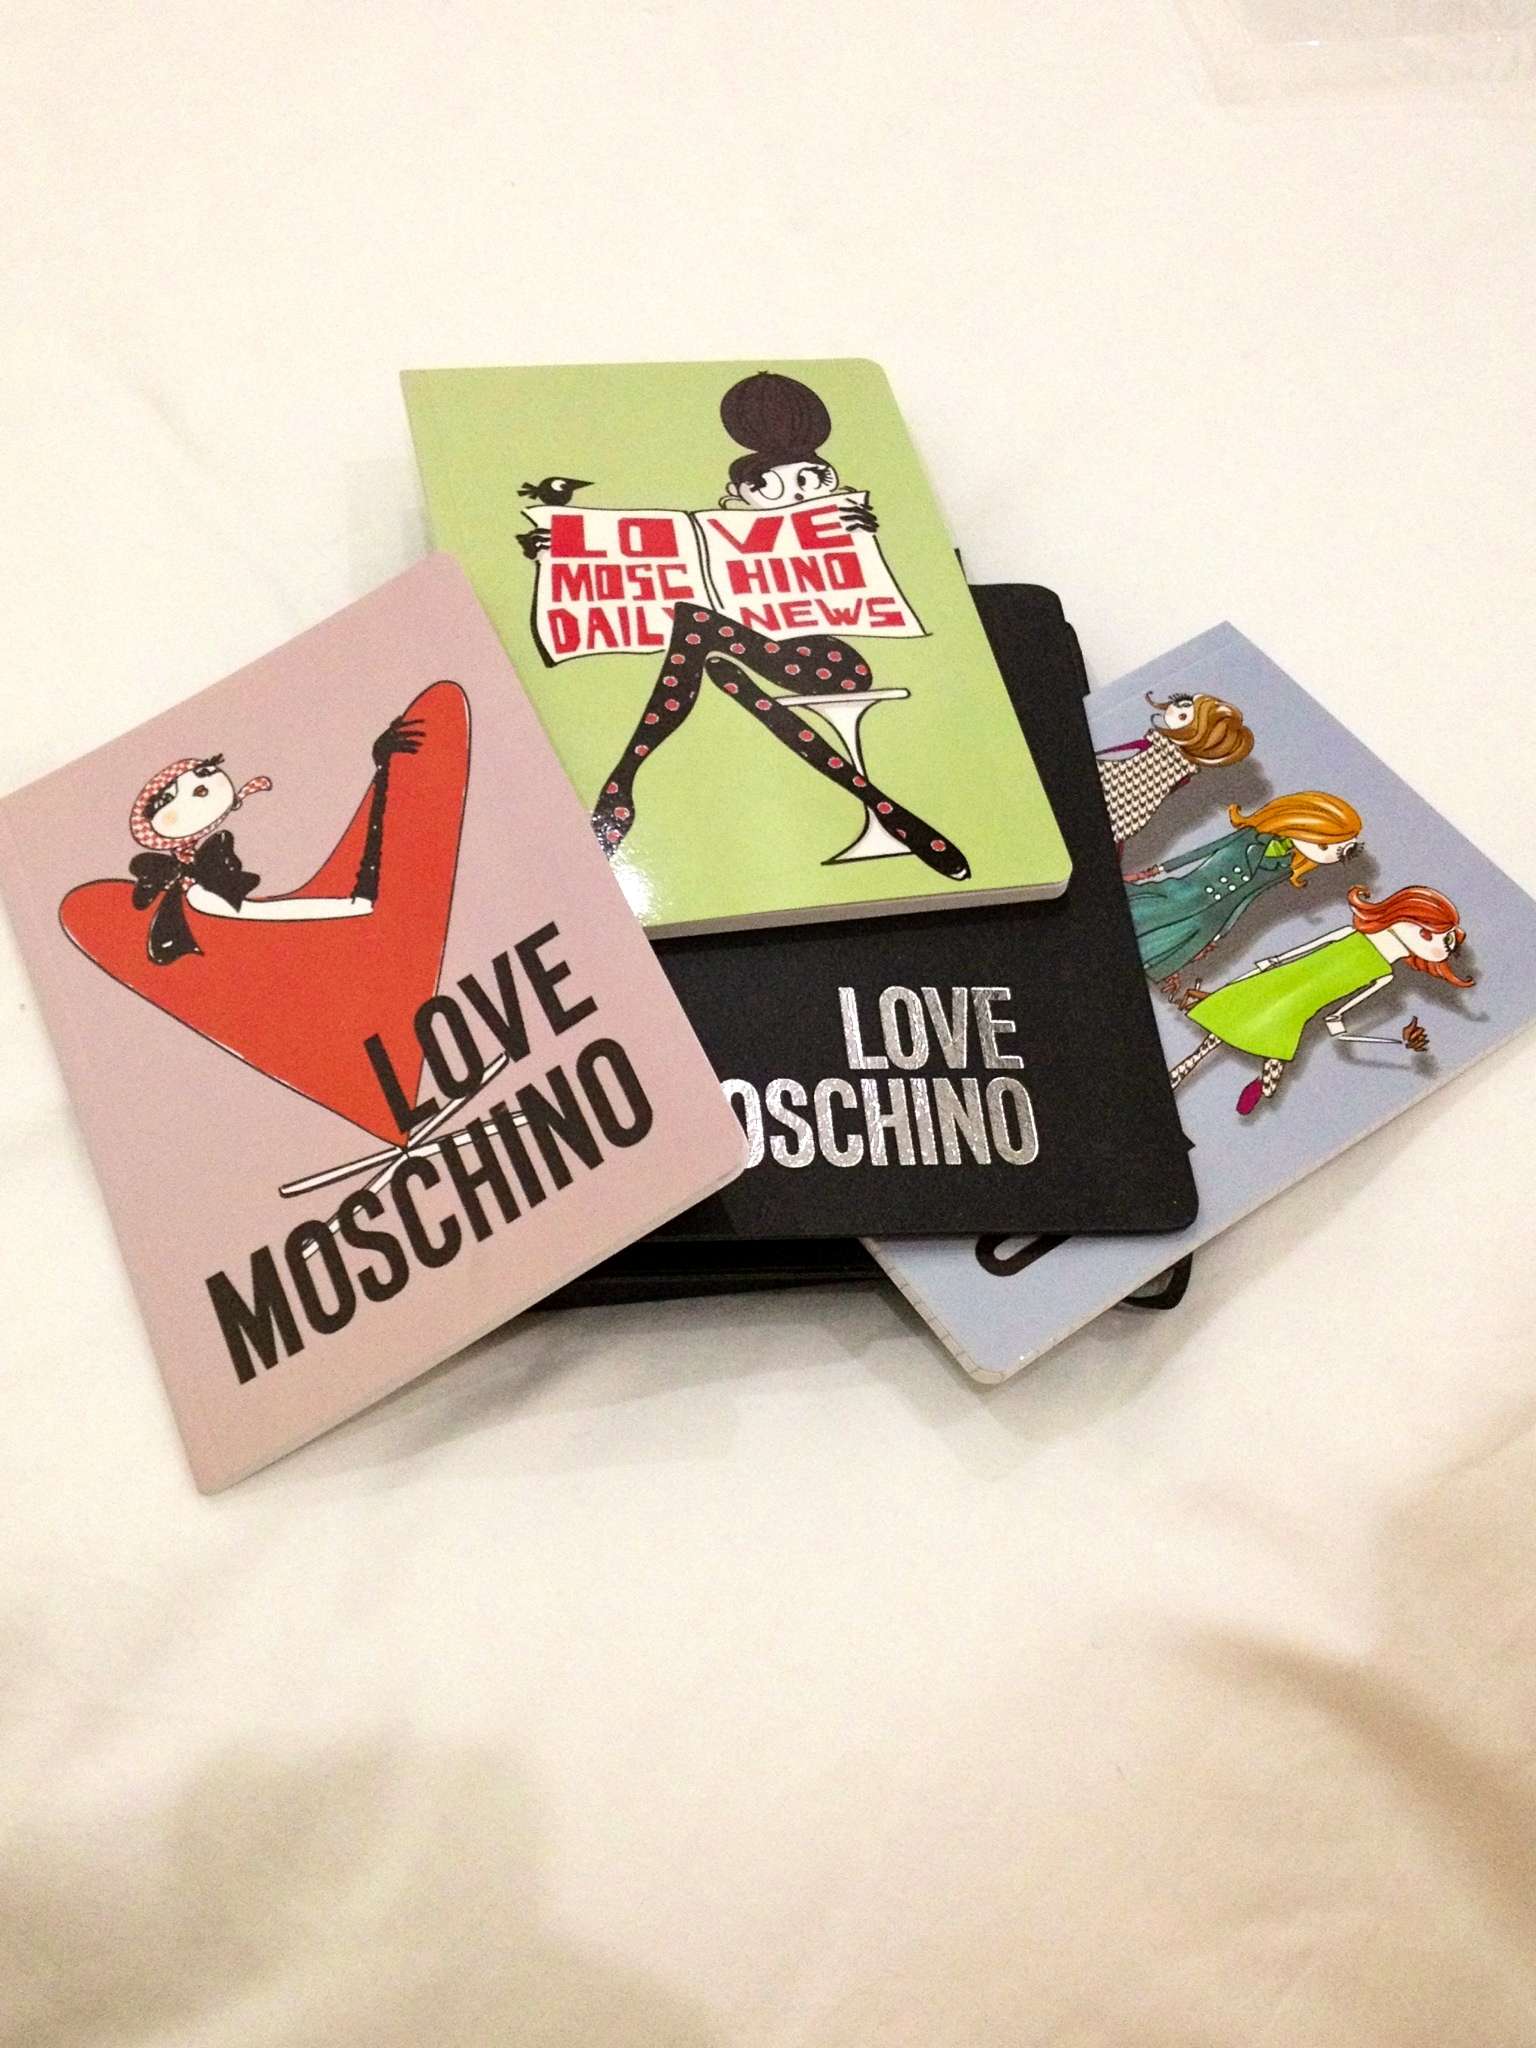 moschino competition